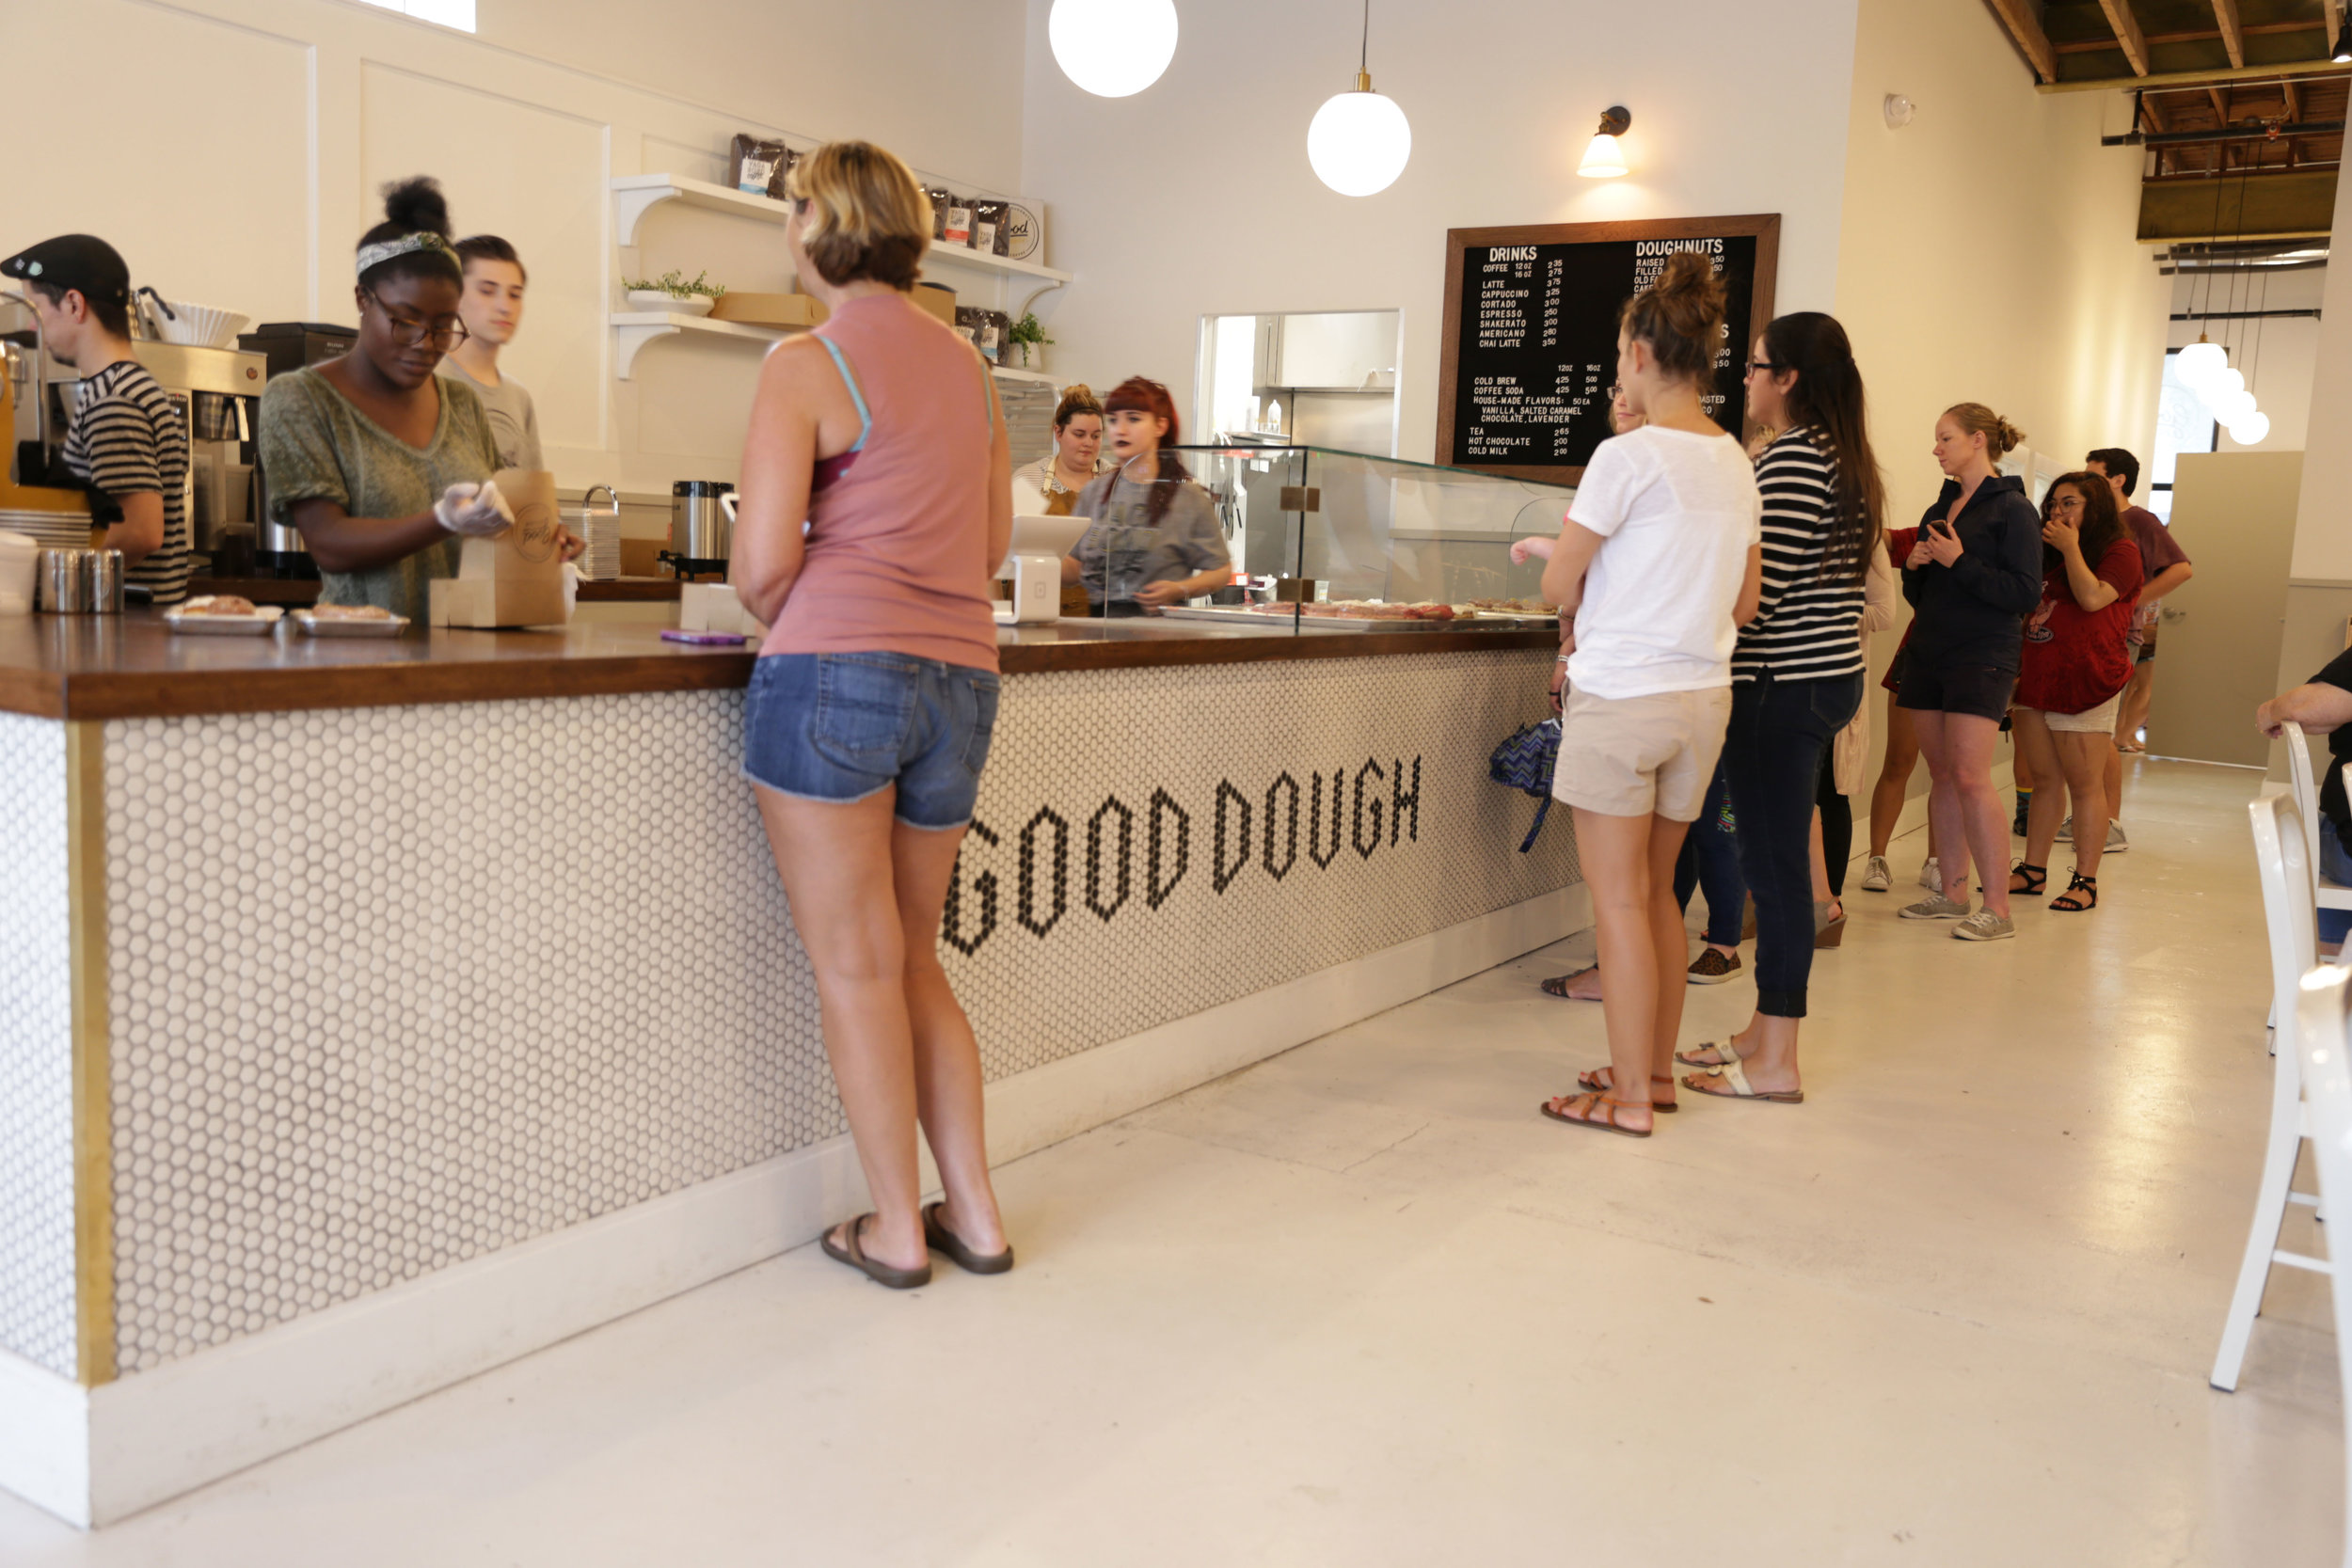 GoodDough_Doughnuts_Counter_Jacksonville.jpg